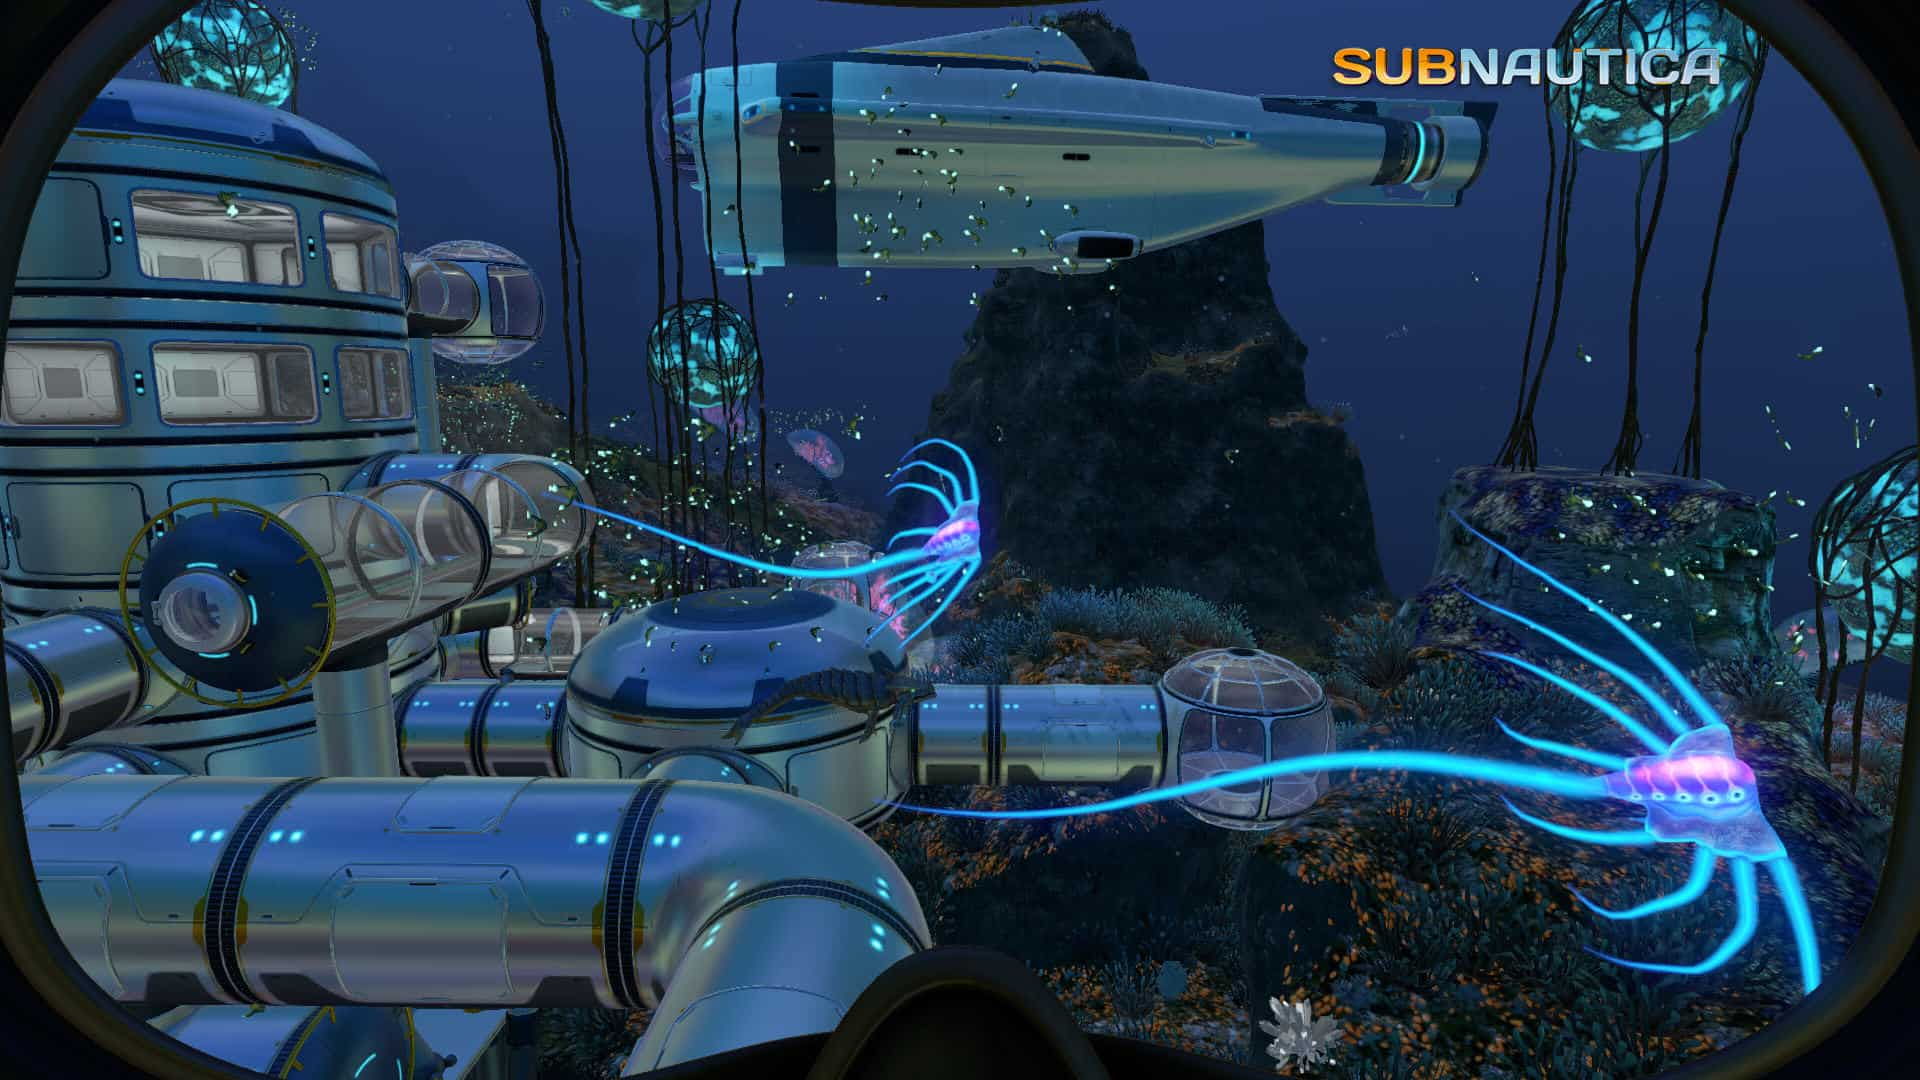 subnautica pc version complete t l charger gratuit jeux steam activation jeux. Black Bedroom Furniture Sets. Home Design Ideas